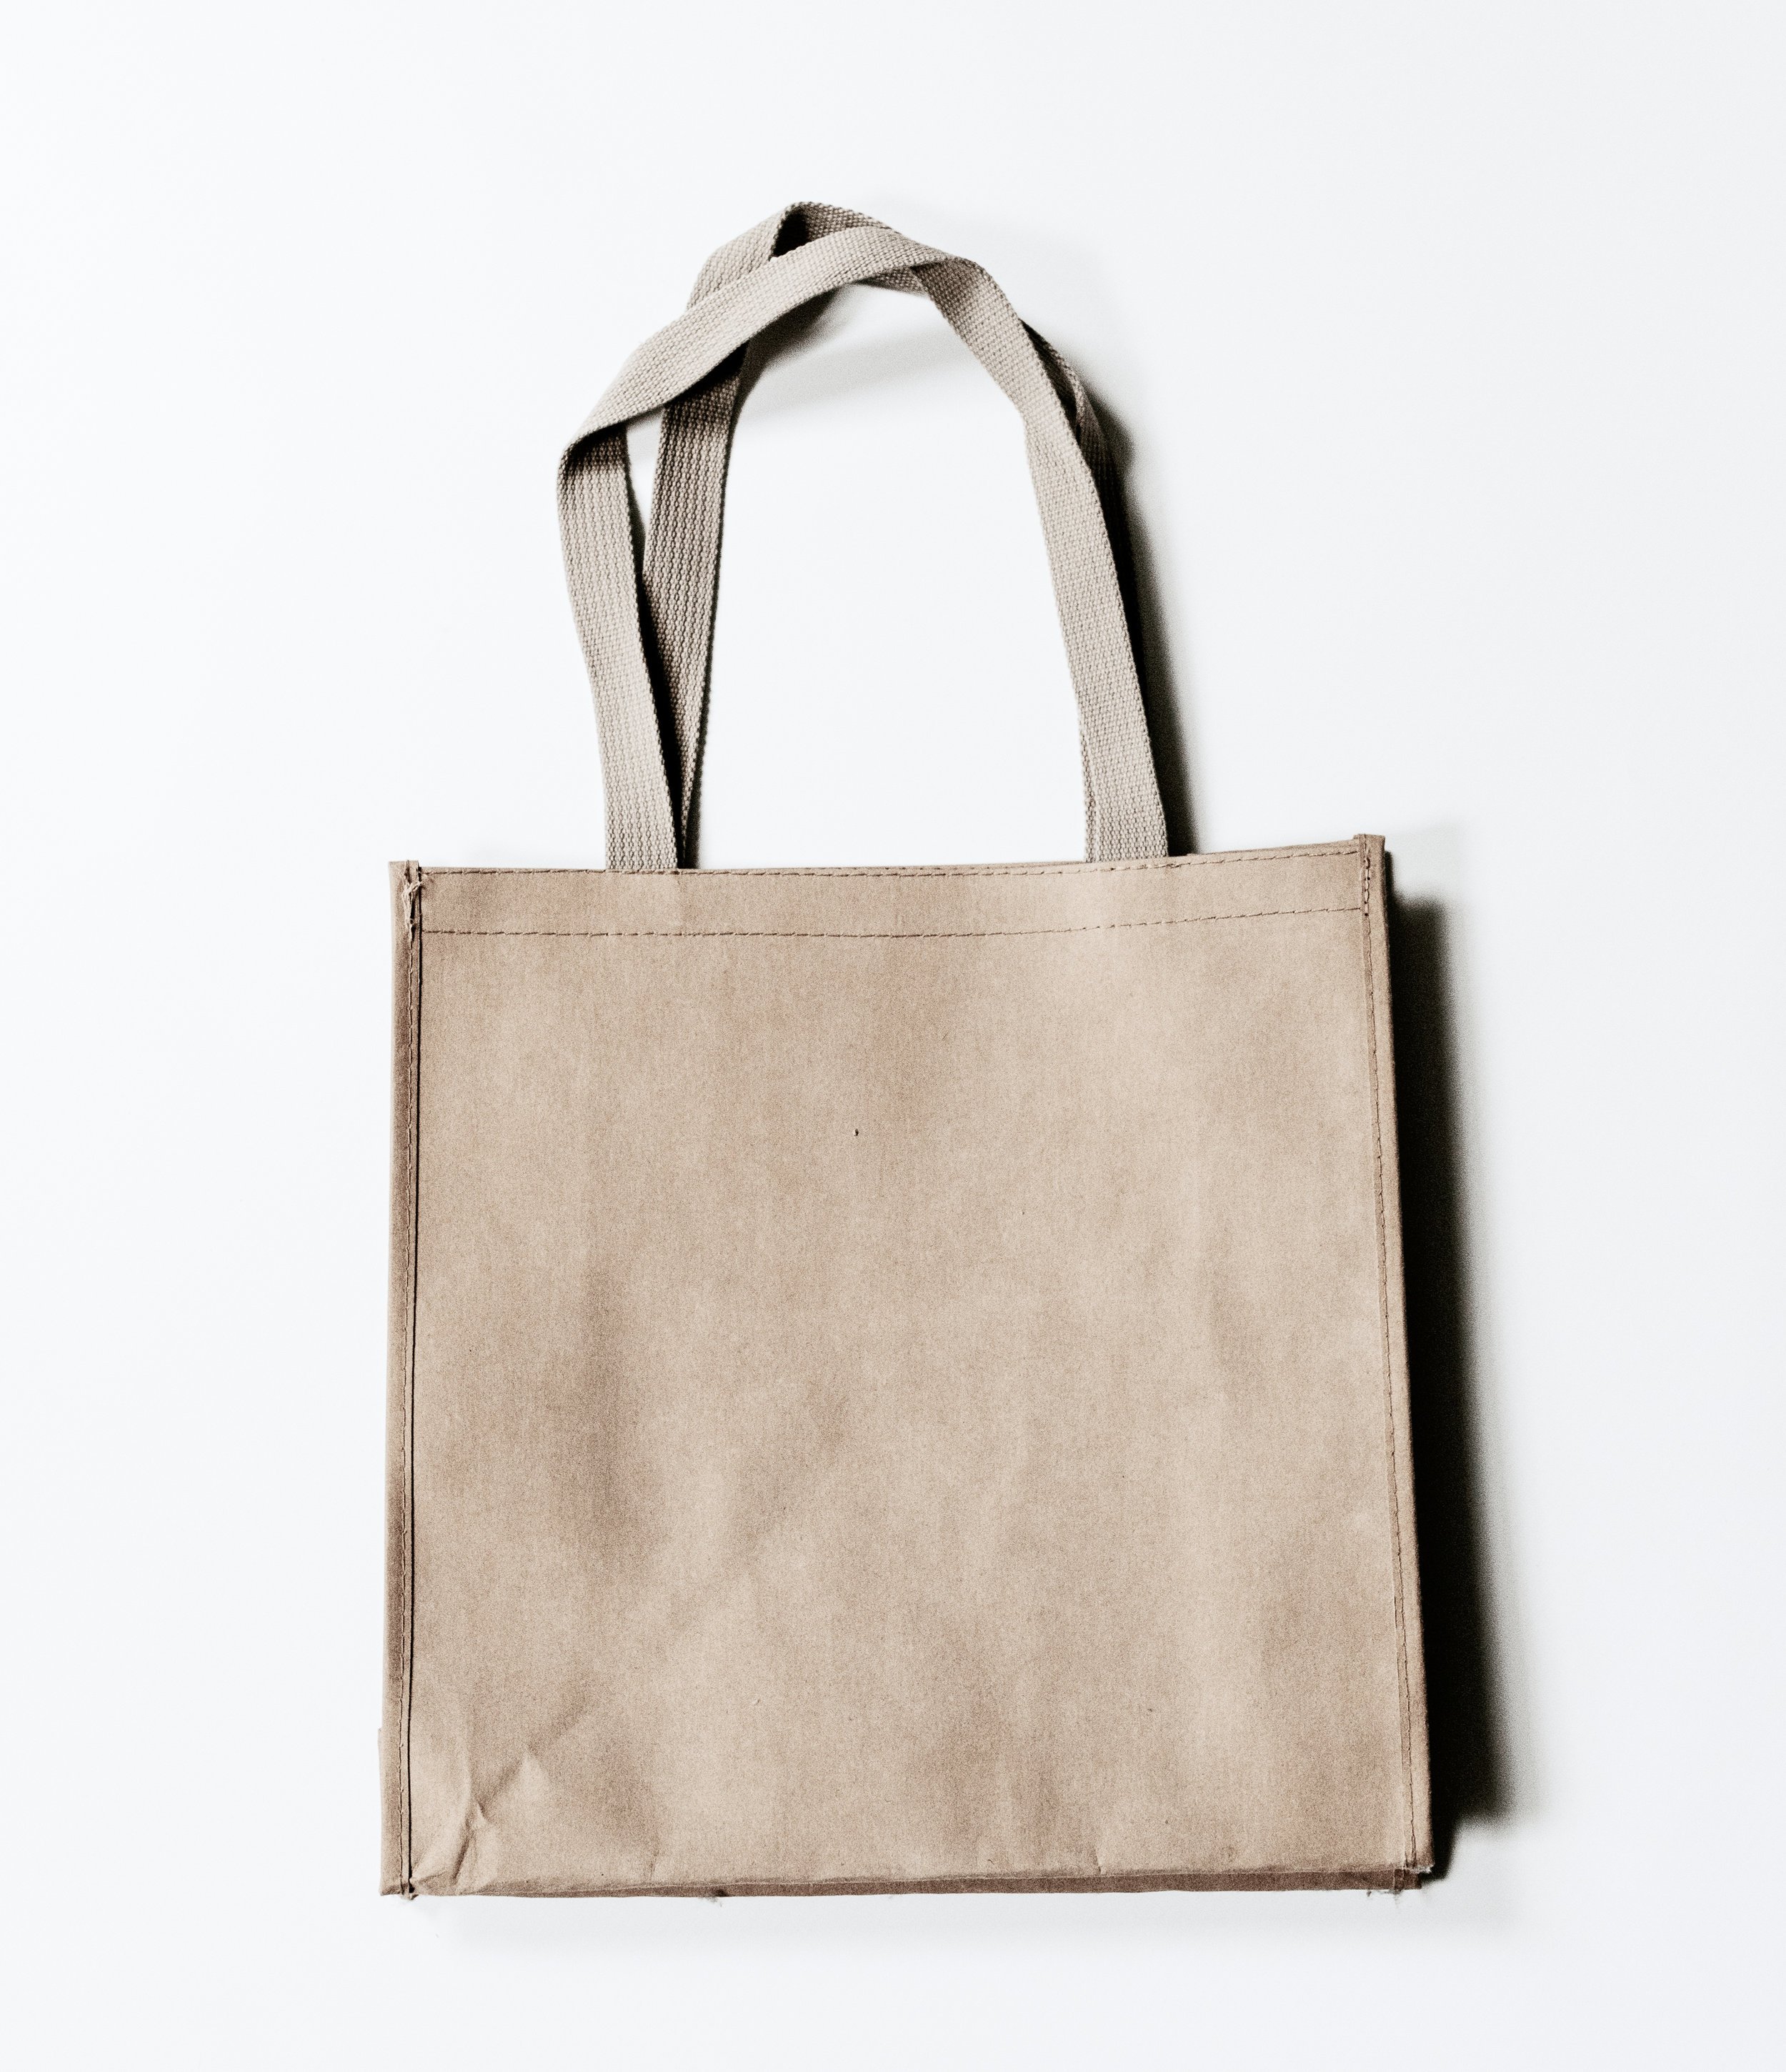 Reusable shopping bags are sold everywhere!